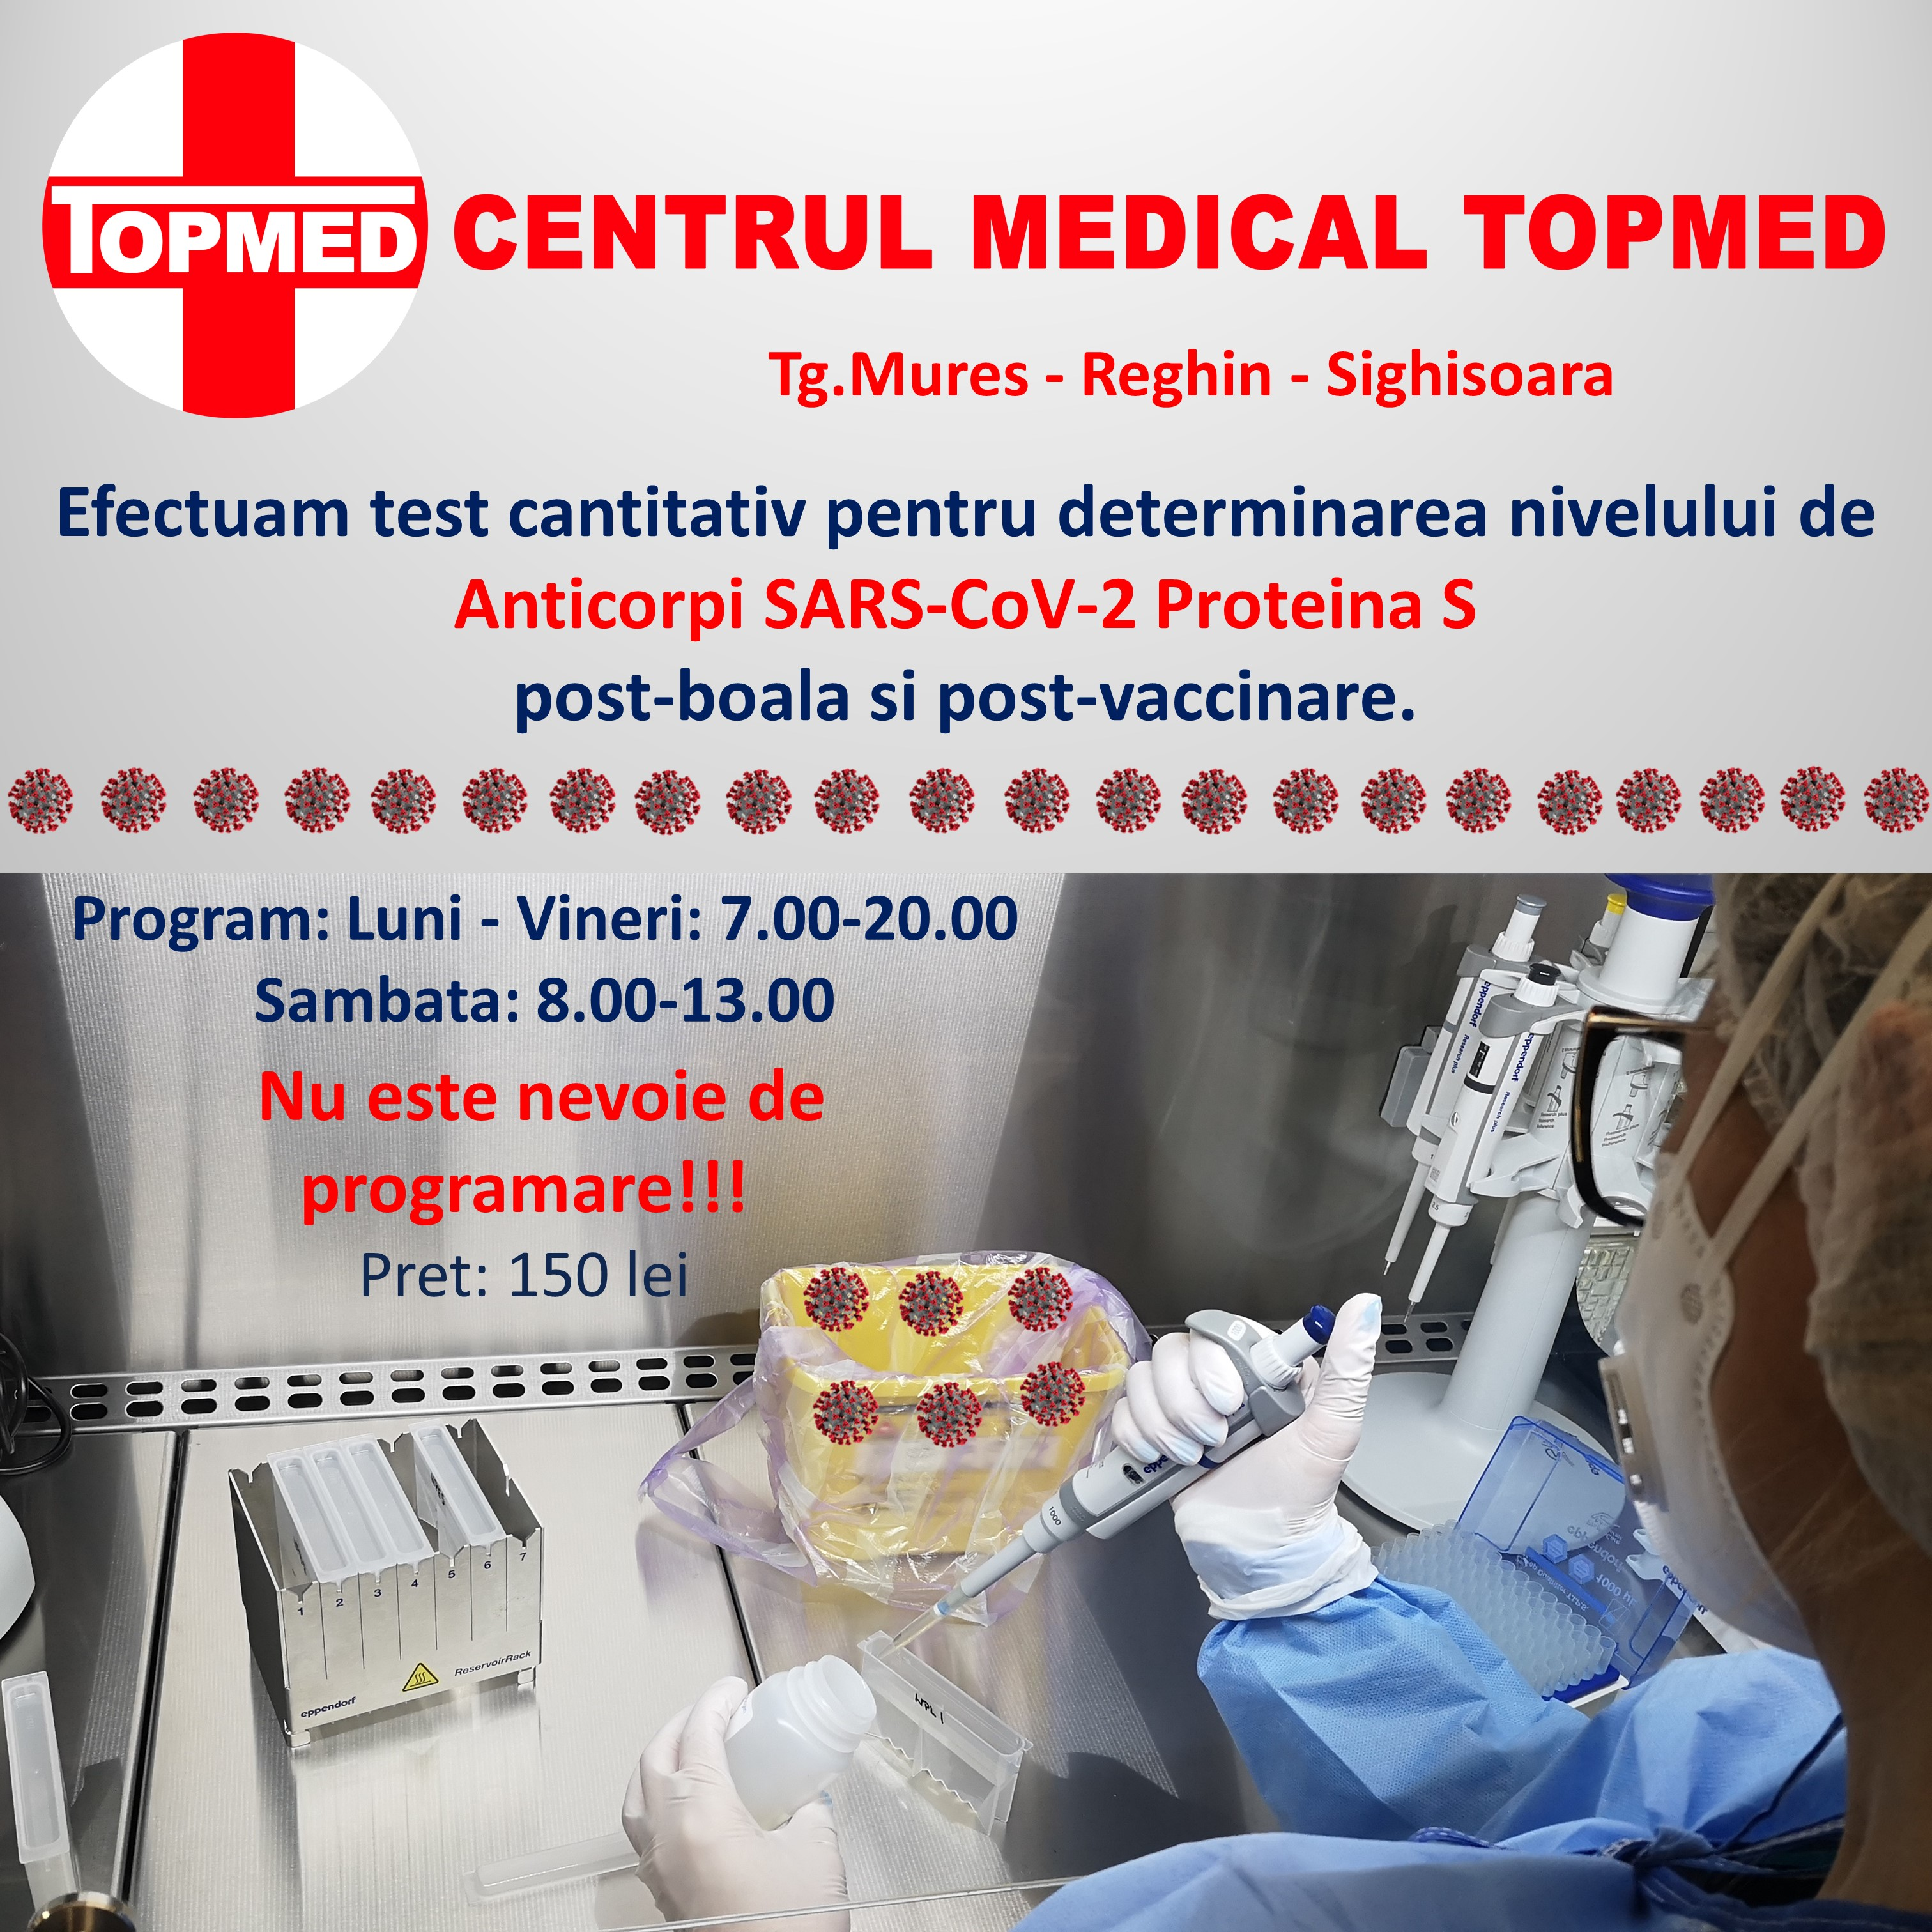 TEST Anticorpi SARS-Cov2 Proteina S Tg.Mures Reghin Sighisoara Topmed